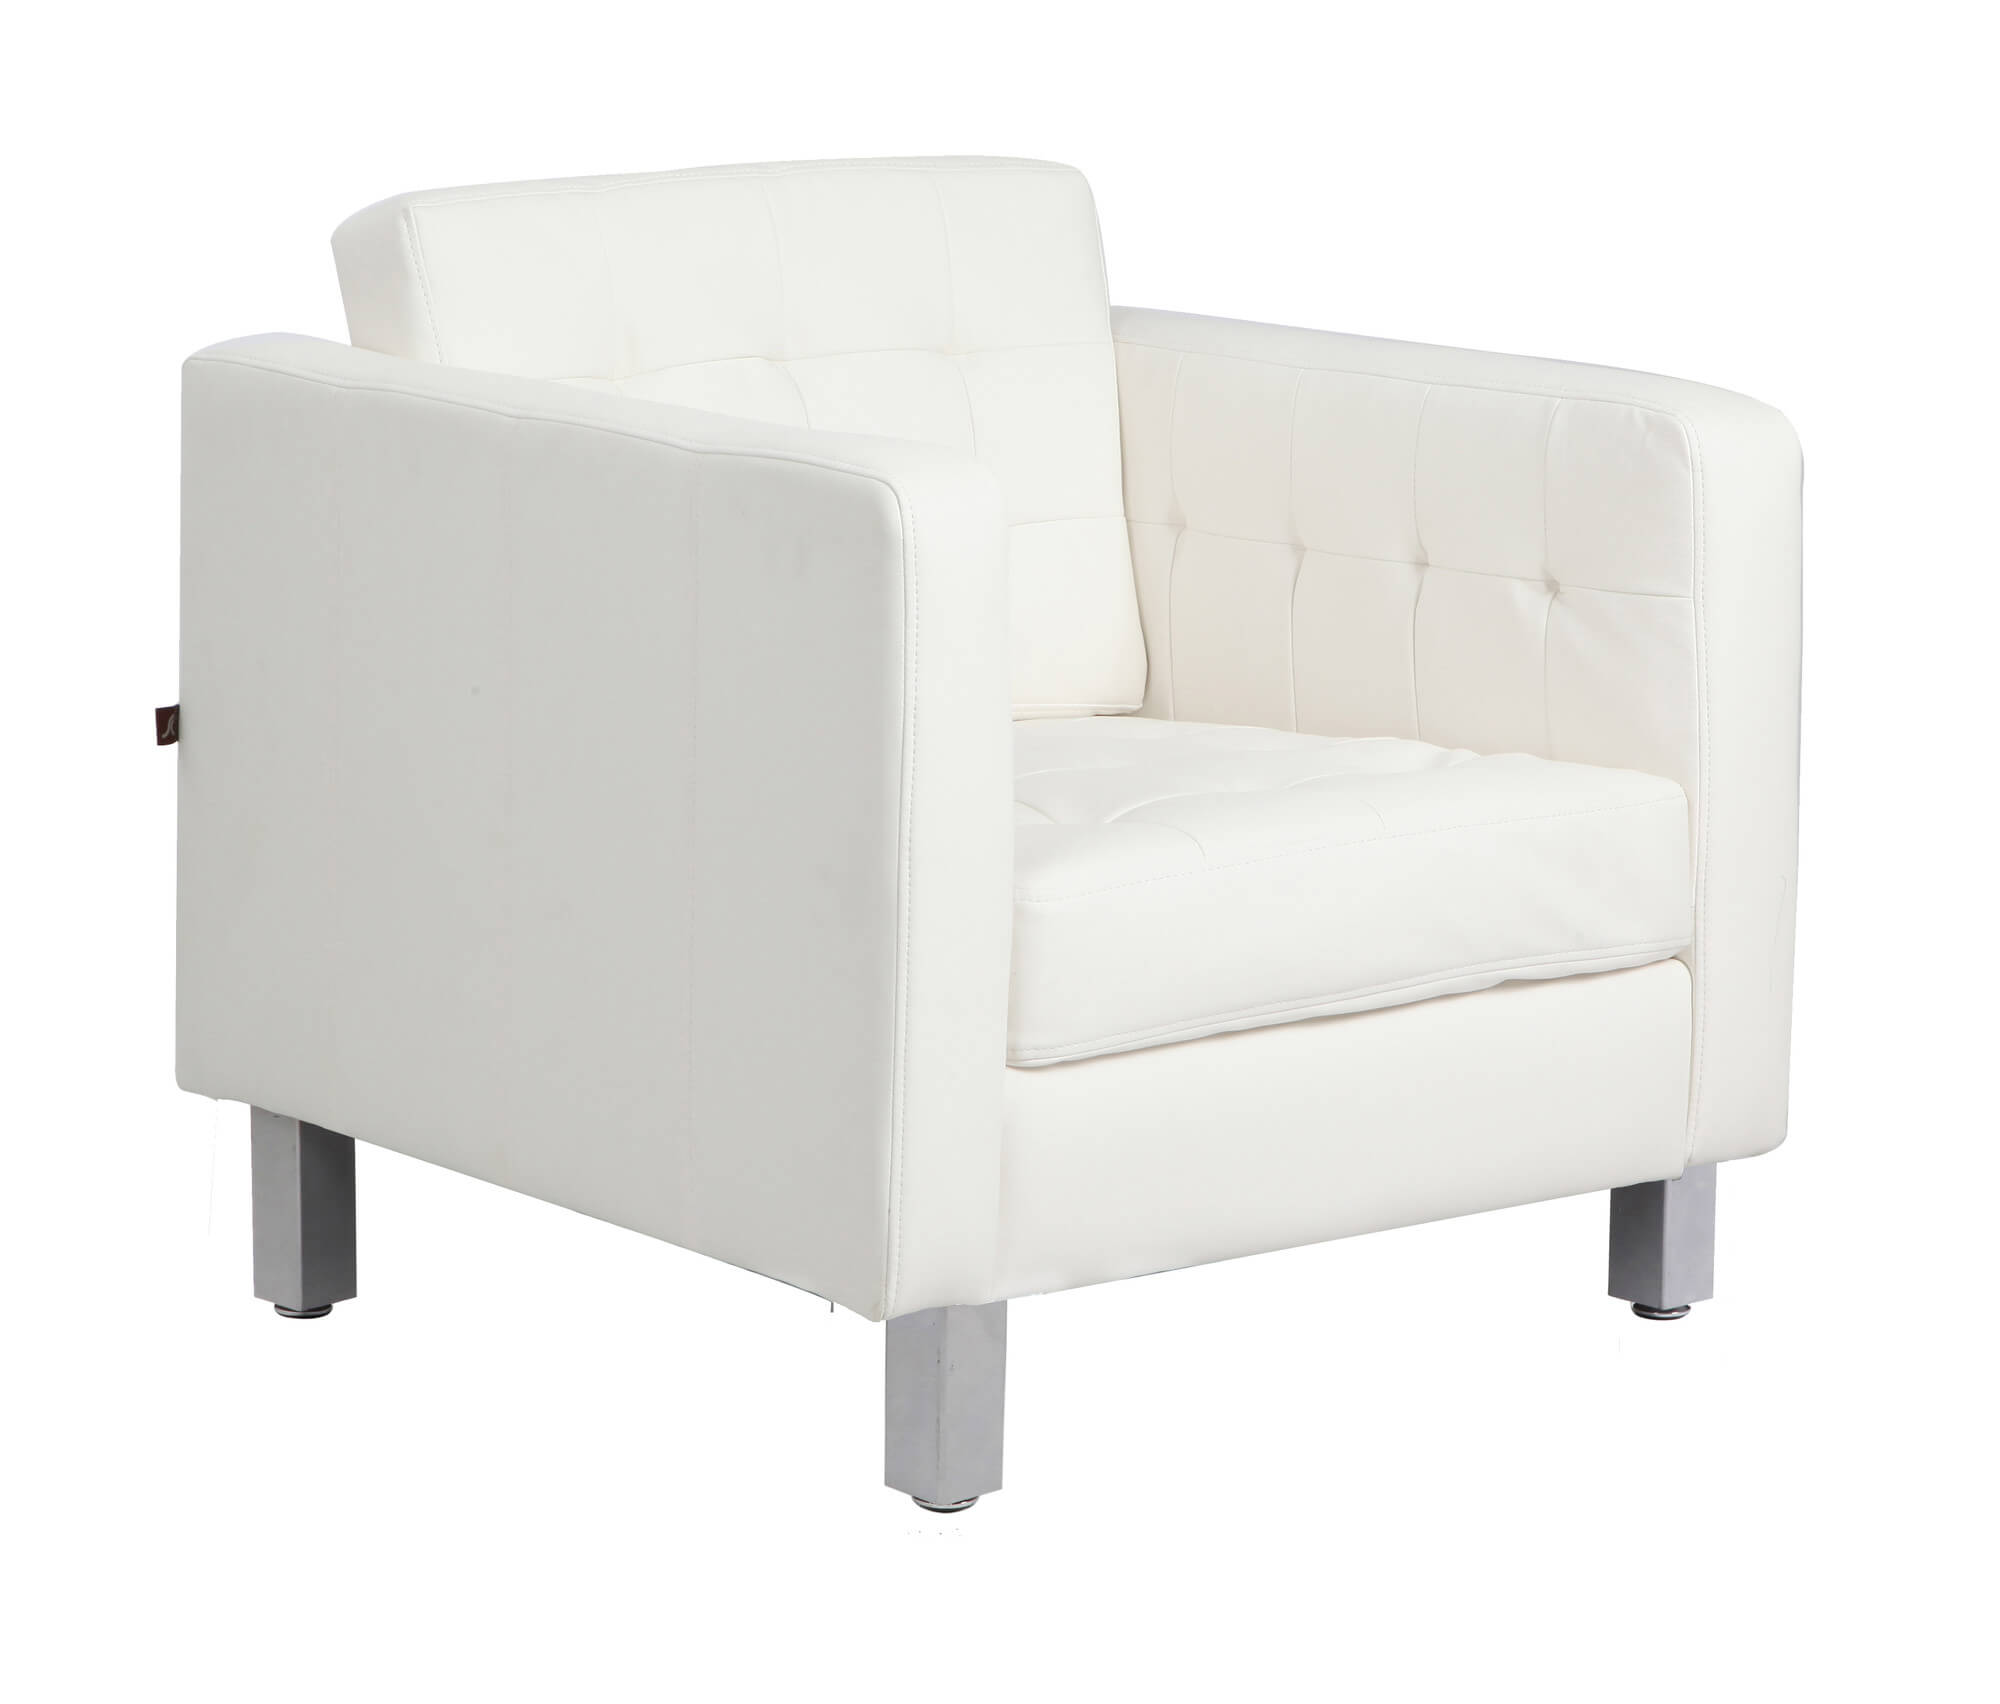 Ordinaire Hereu0027s Another Club Chair, From Rissanti Is Upholstered In Bonded Leather,  With Spring Seat .